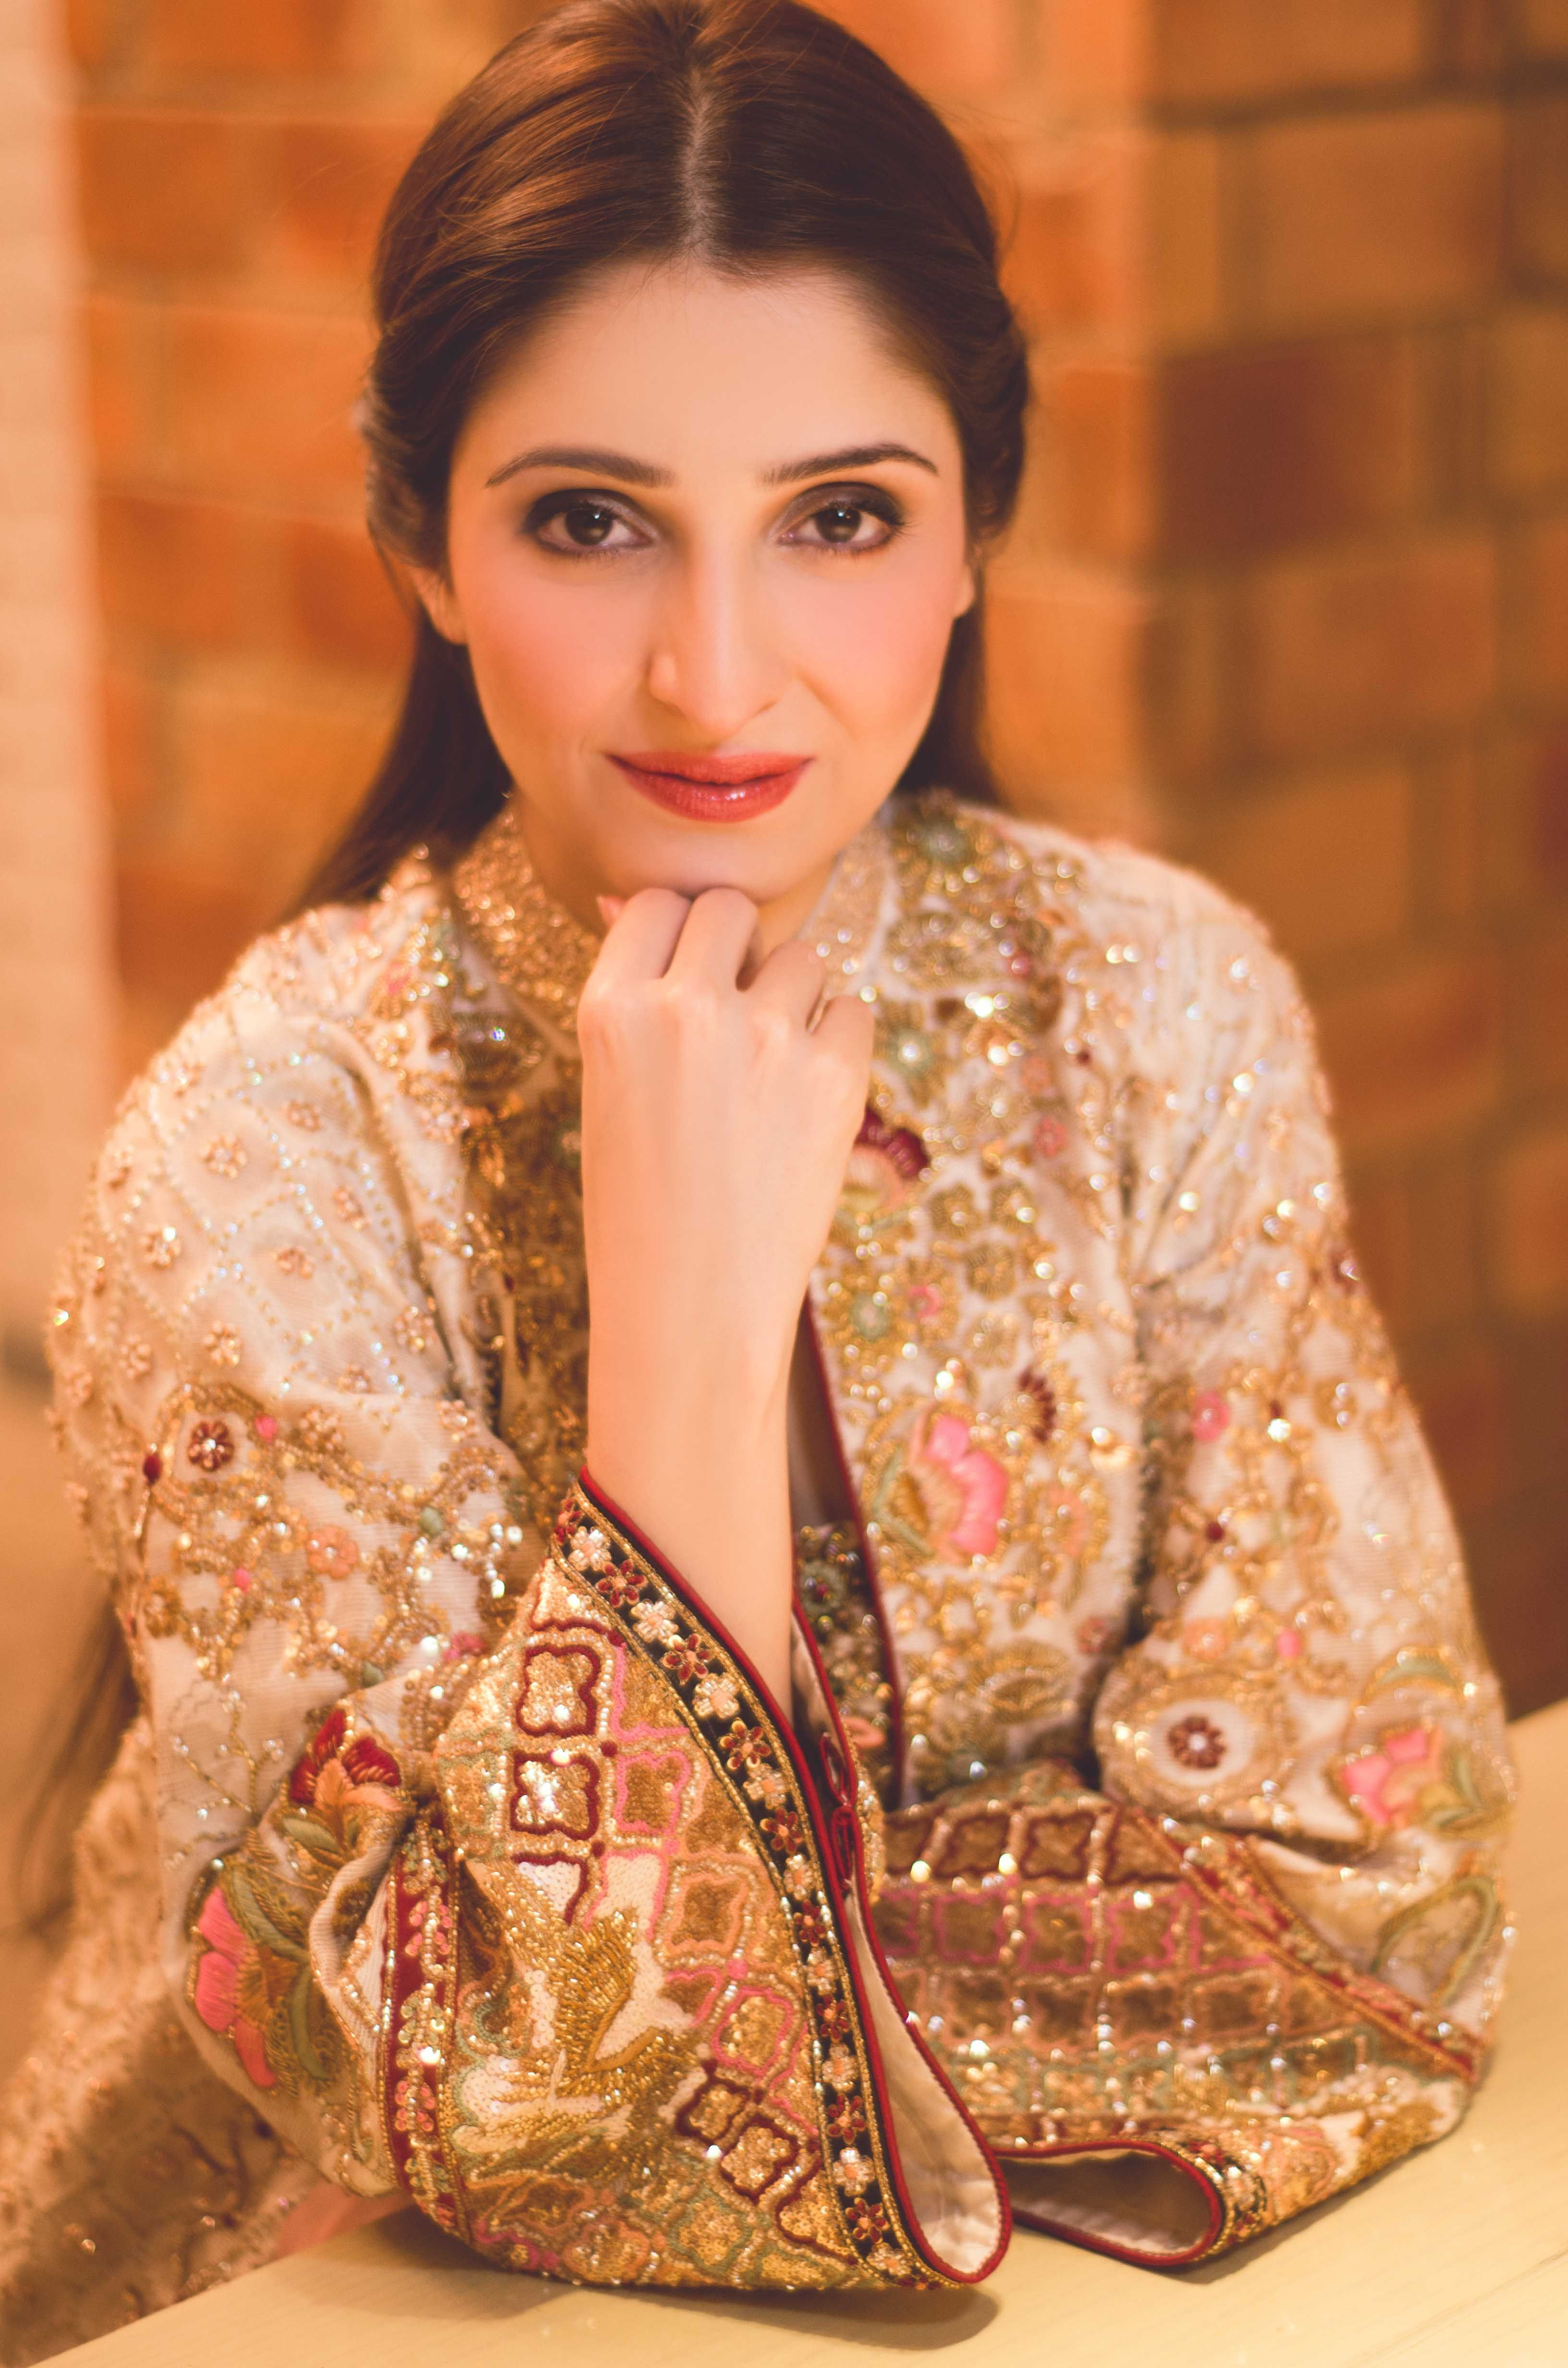 Best wedding dresses karachi  For queries orders and appointments please email us on info